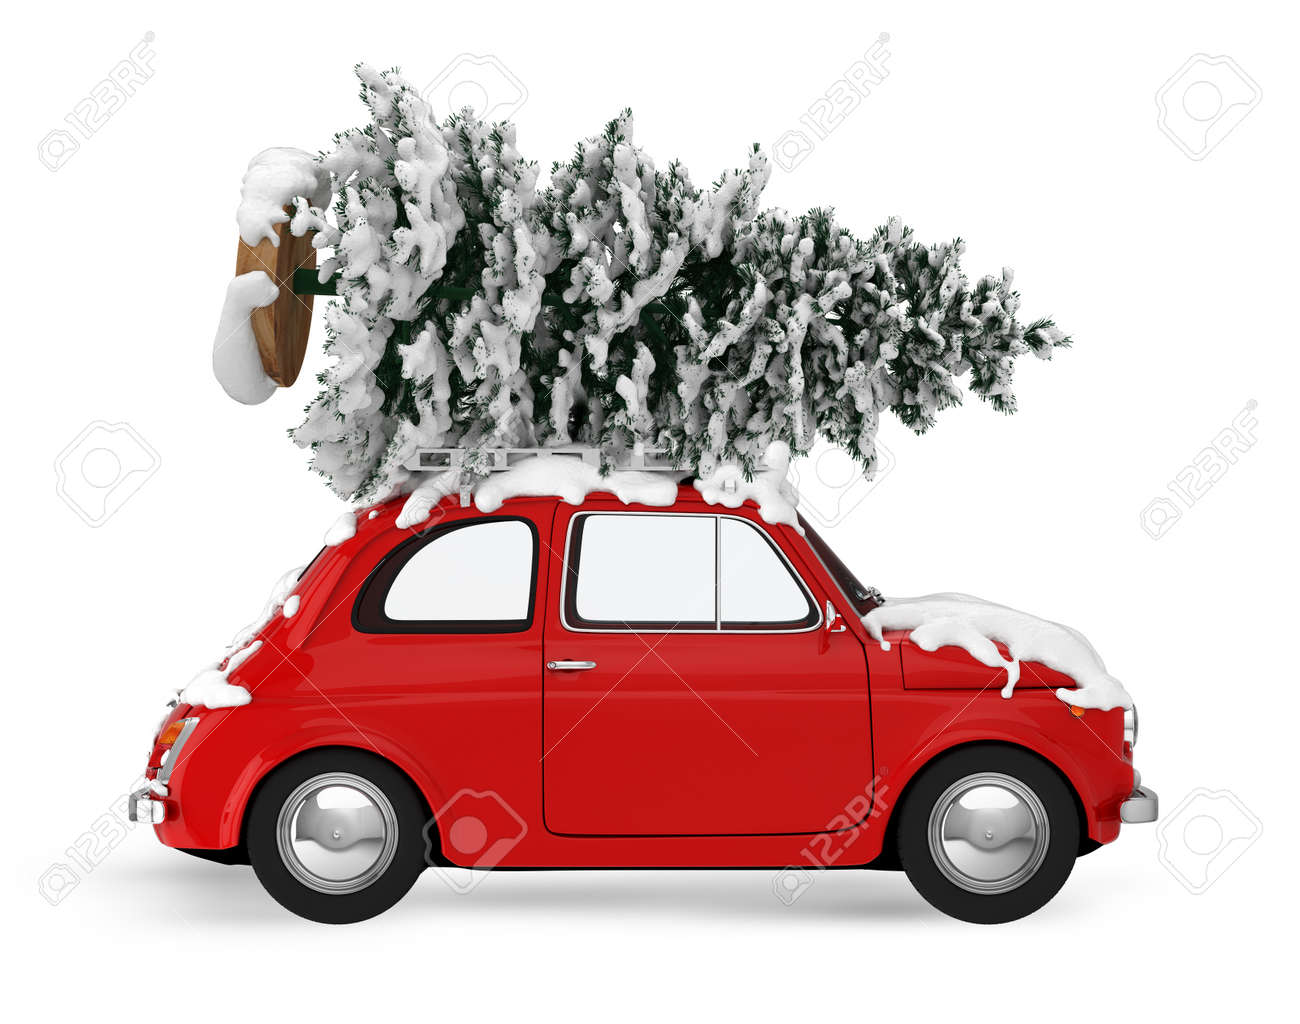 Christmas Tree On The Roof Of A Vintage Red Car Xmas Holiday Stock Photo Picture And Royalty Free Image Image 70897951